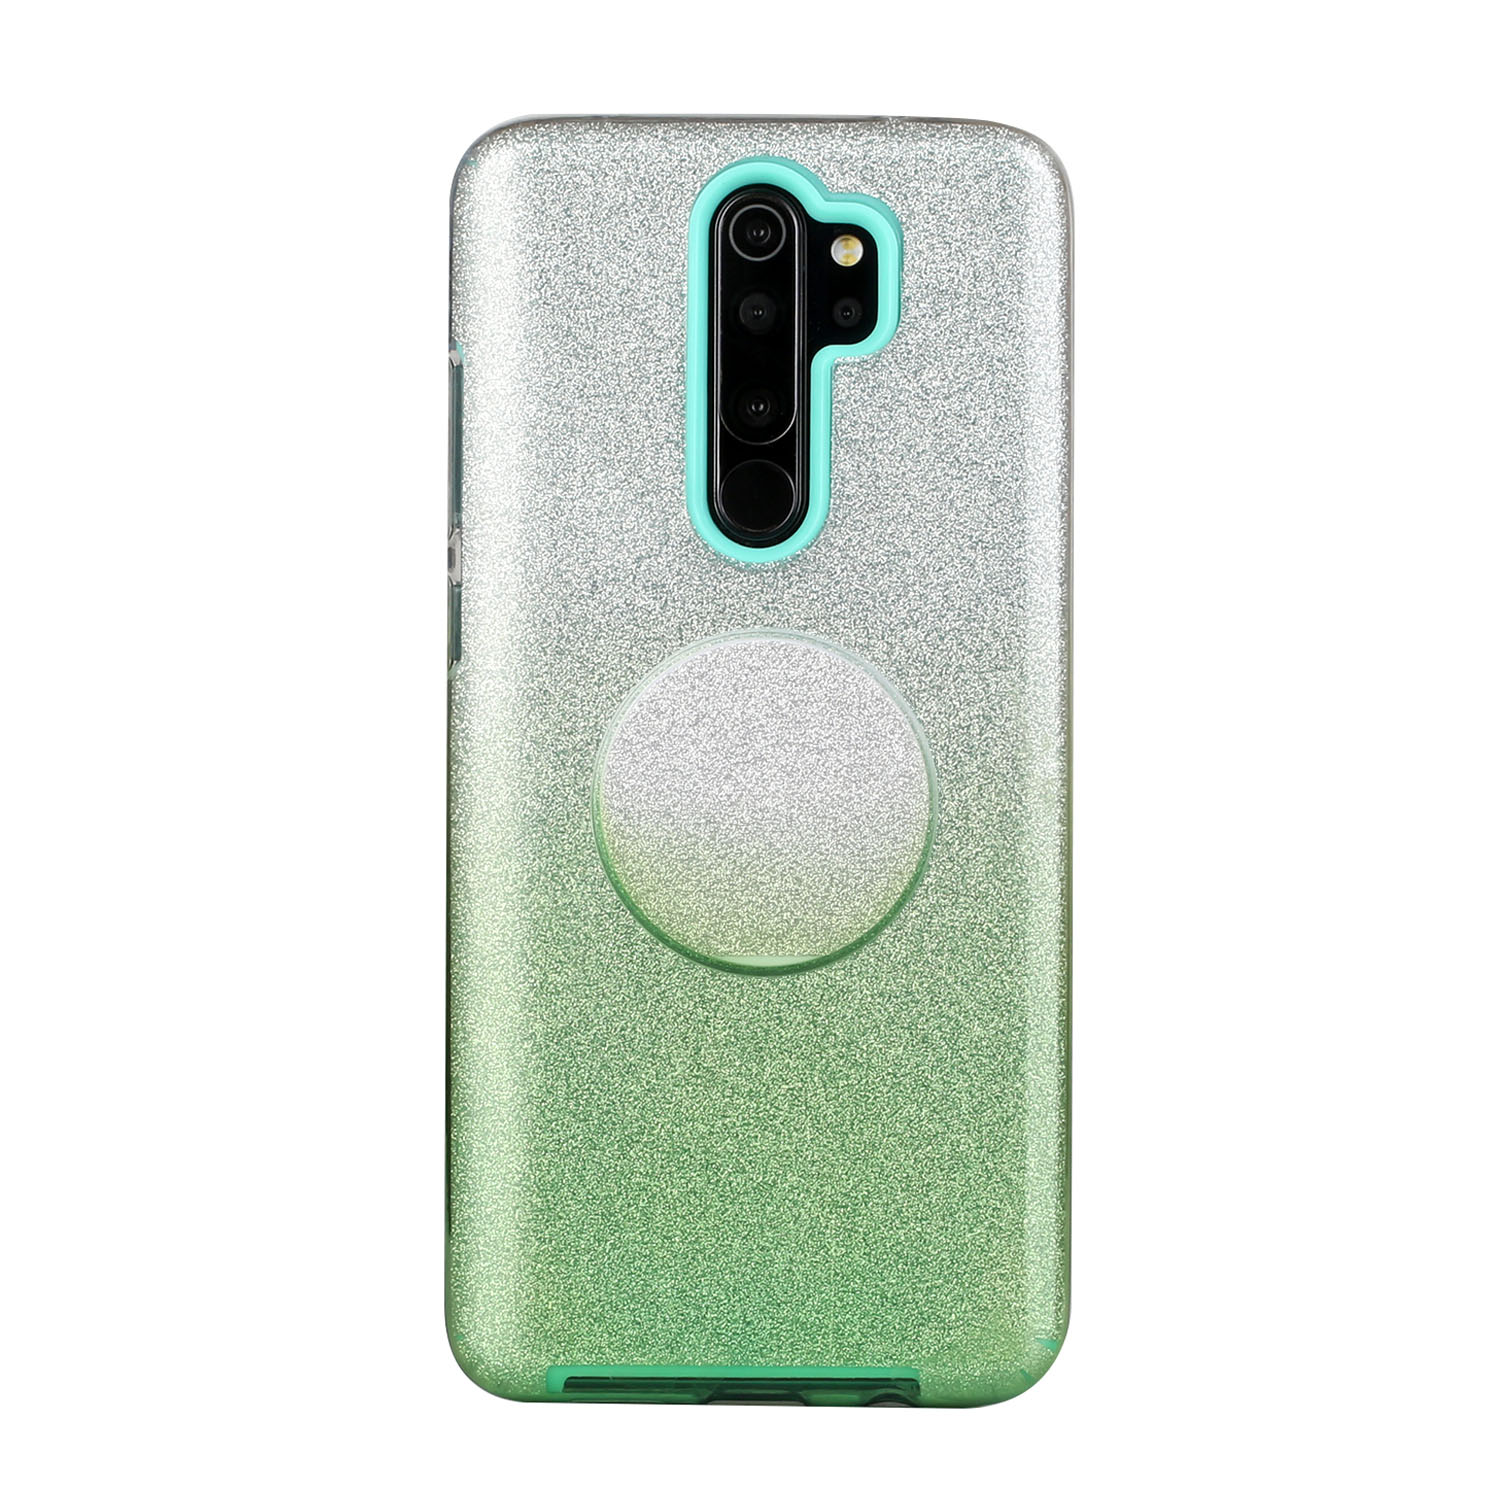 For Redmi Note 7/Note 7 pro/Note 8/Note 8 pro/8/8A Phone Case Gradient Color Glitter Powder Phone Cover with Airbag Bracket green